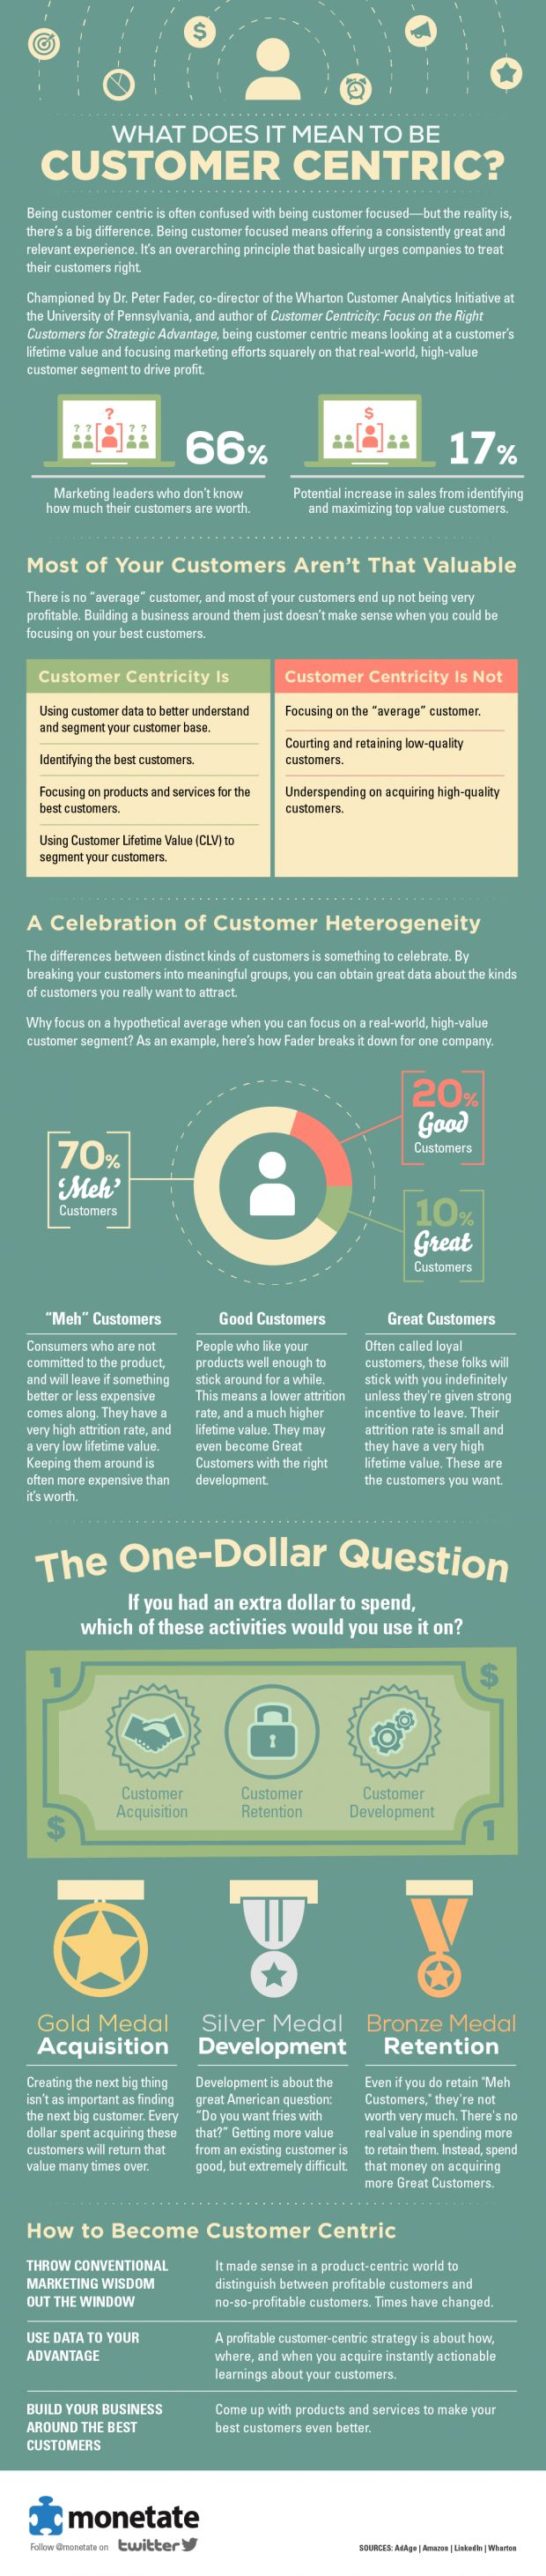 Is Your Business Customer Centric? - Infographic | No Worry Web